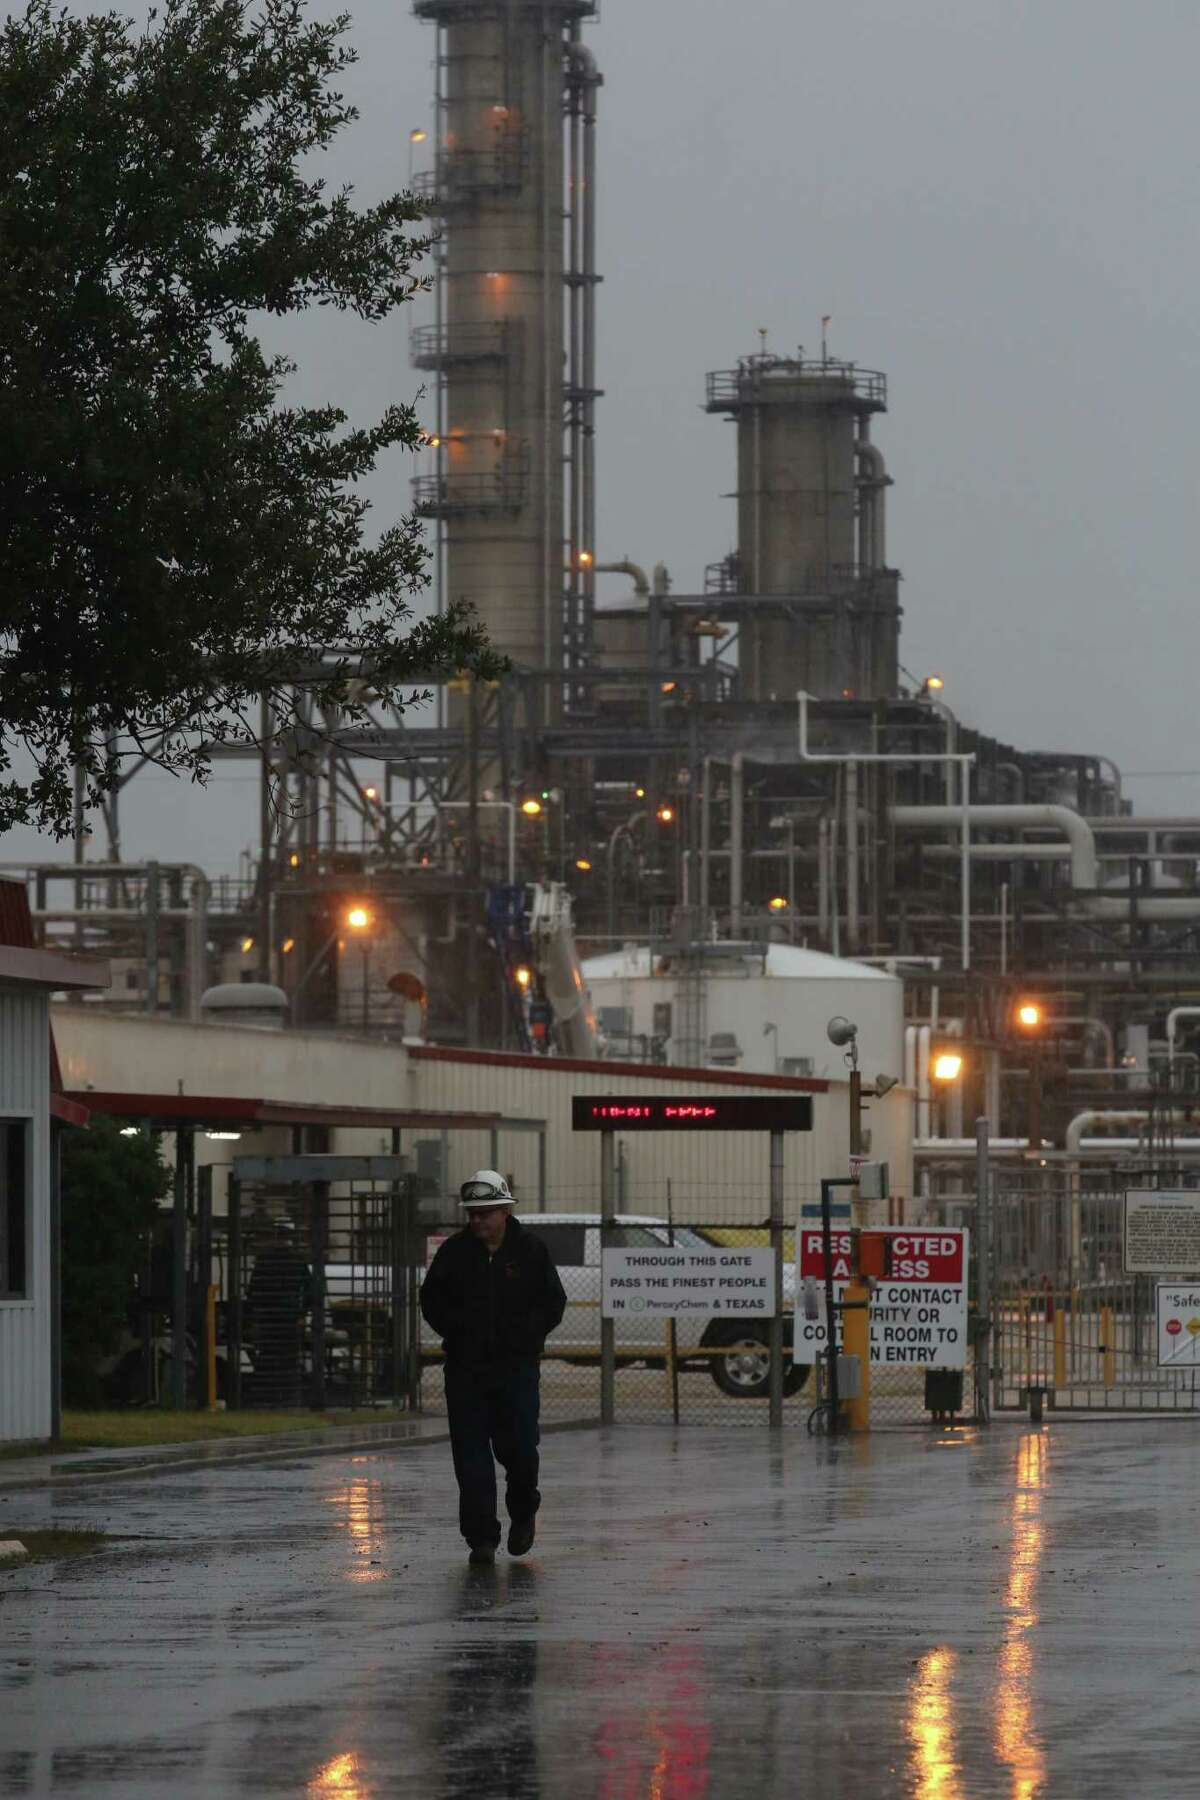 A man walks by the gate of a PeroxyChem plant in the 12000 block of Bay Area Blvd, in the Bayport complex, Saturday Jan. 16, 2016, in Pasadena. One person was killed and three were injured in a chemical explosion or leak, according to authorities.